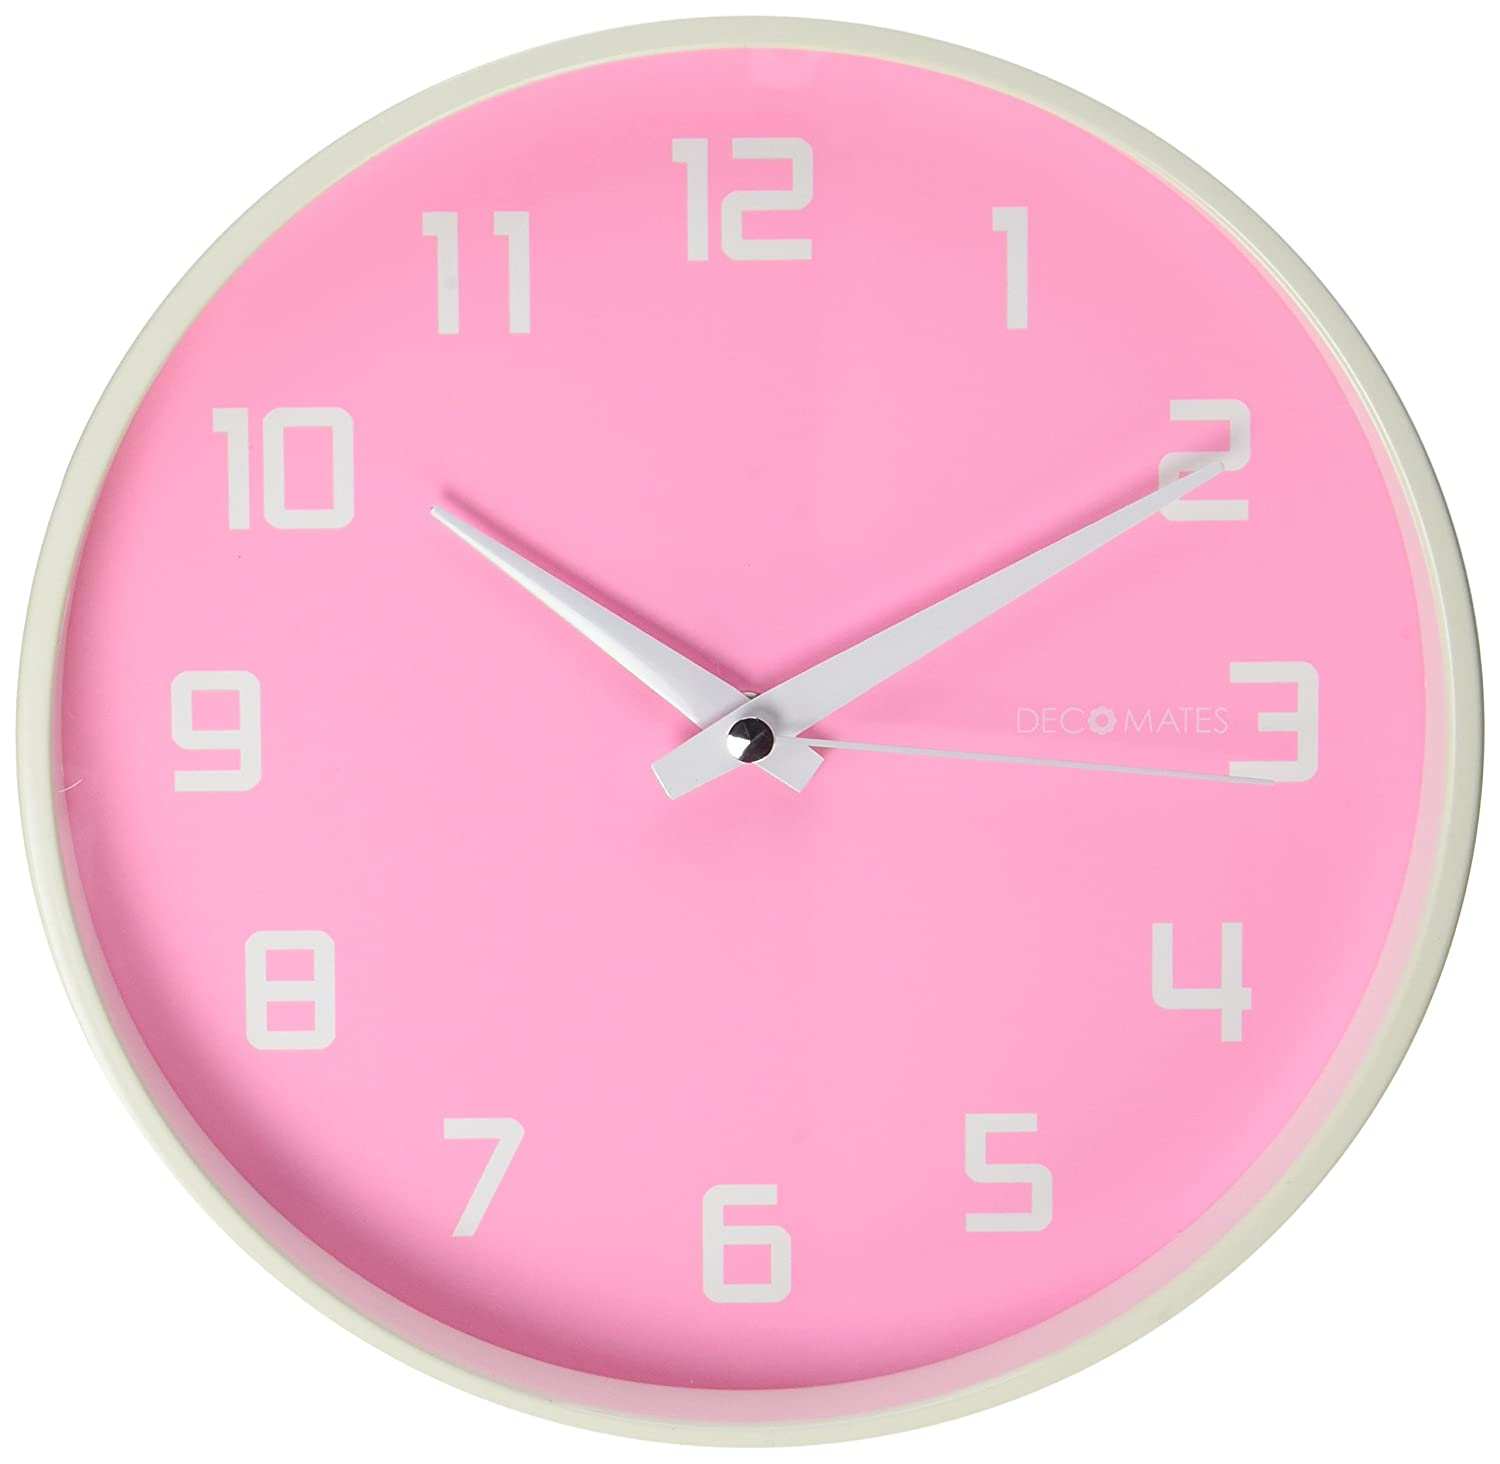 Amazon decomates non ticking silent wall clock pink fruity amazon decomates non ticking silent wall clock pink fruity watermelon home kitchen amipublicfo Image collections